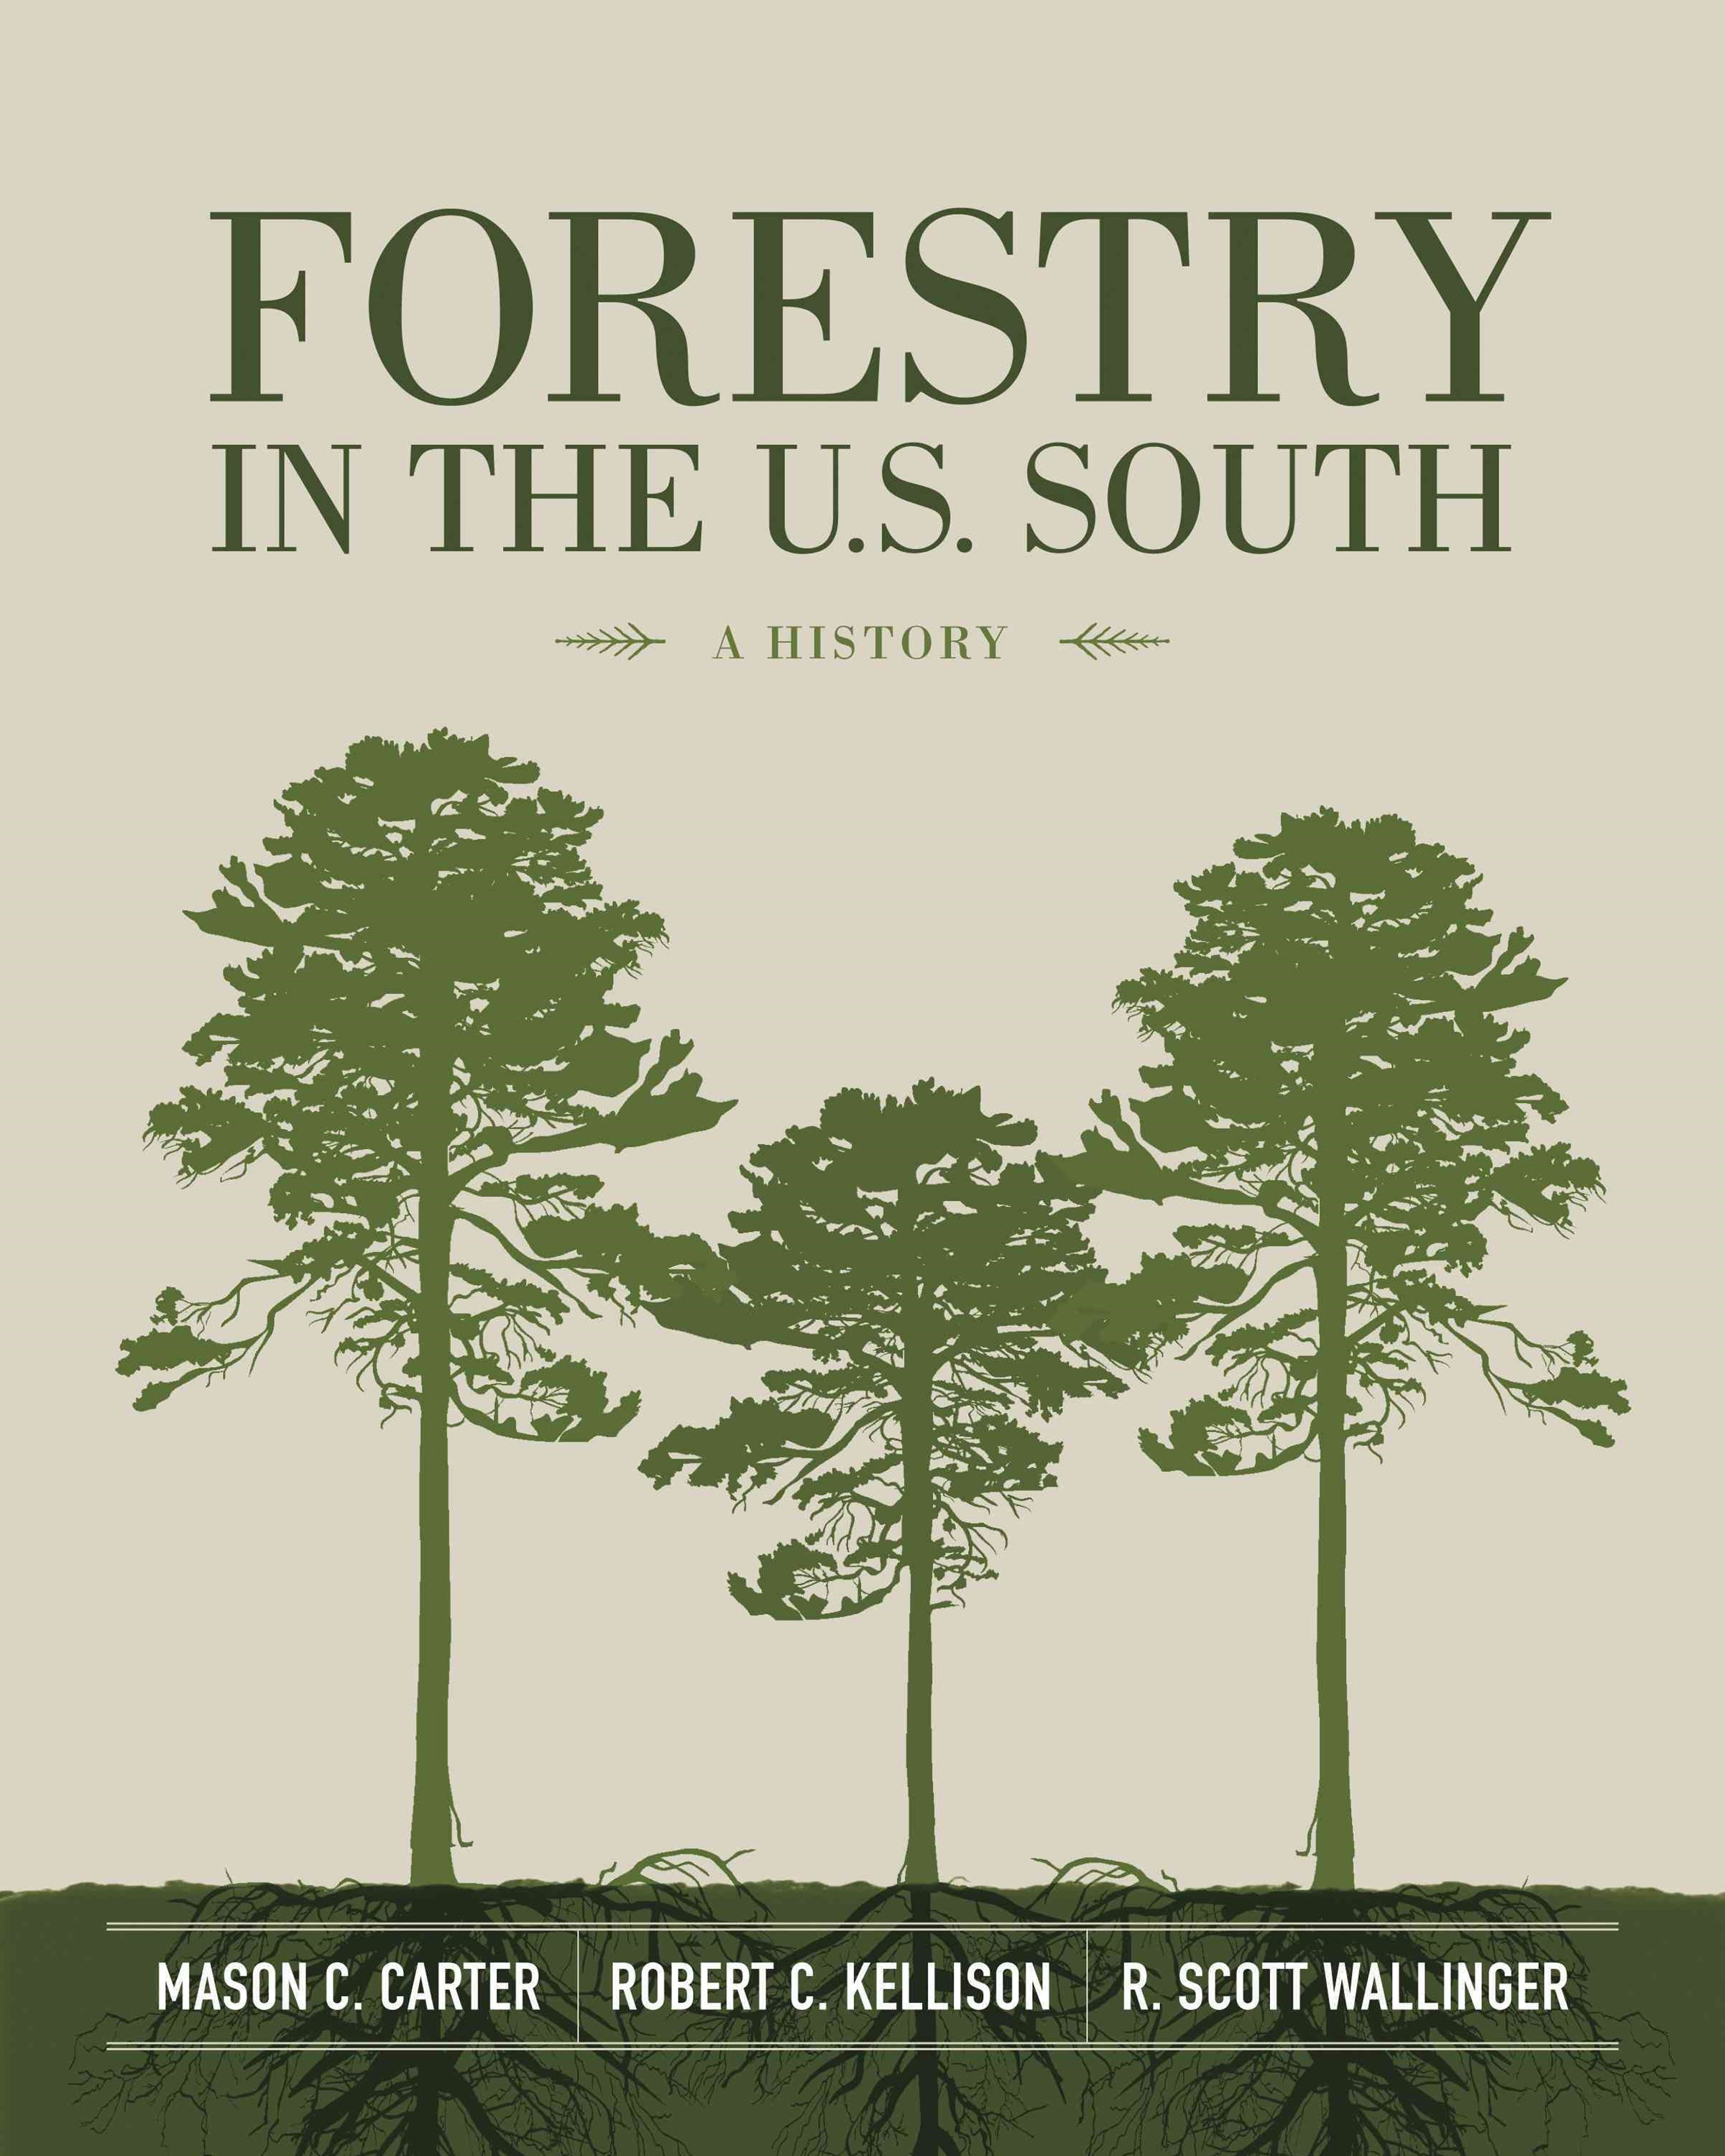 Forestry in the U. S. South